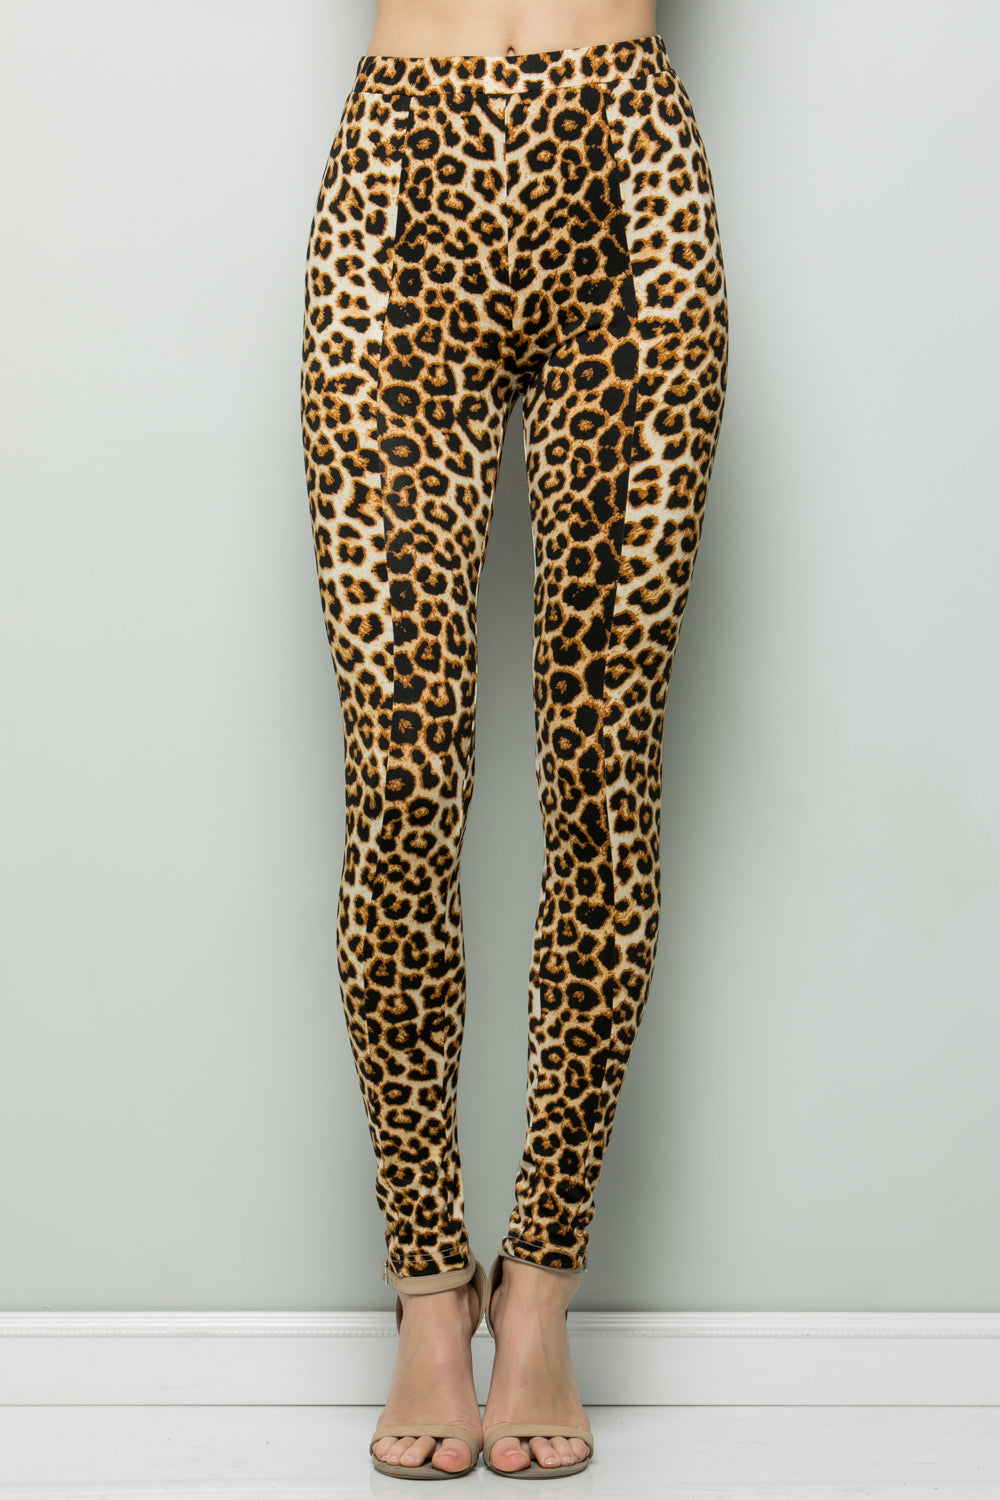 P7054 Animal print Leggings